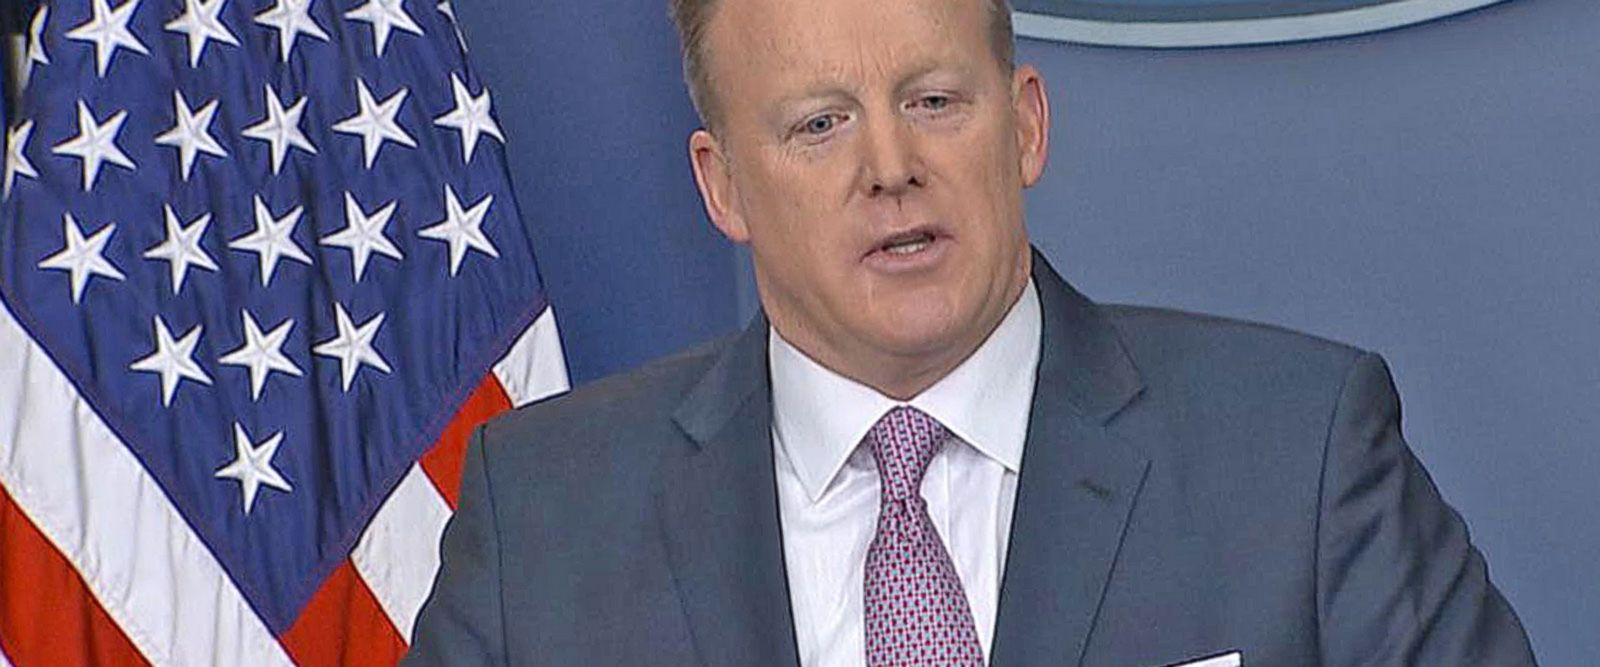 VIDEO: Inside Sean Spicer's White House Press Briefing